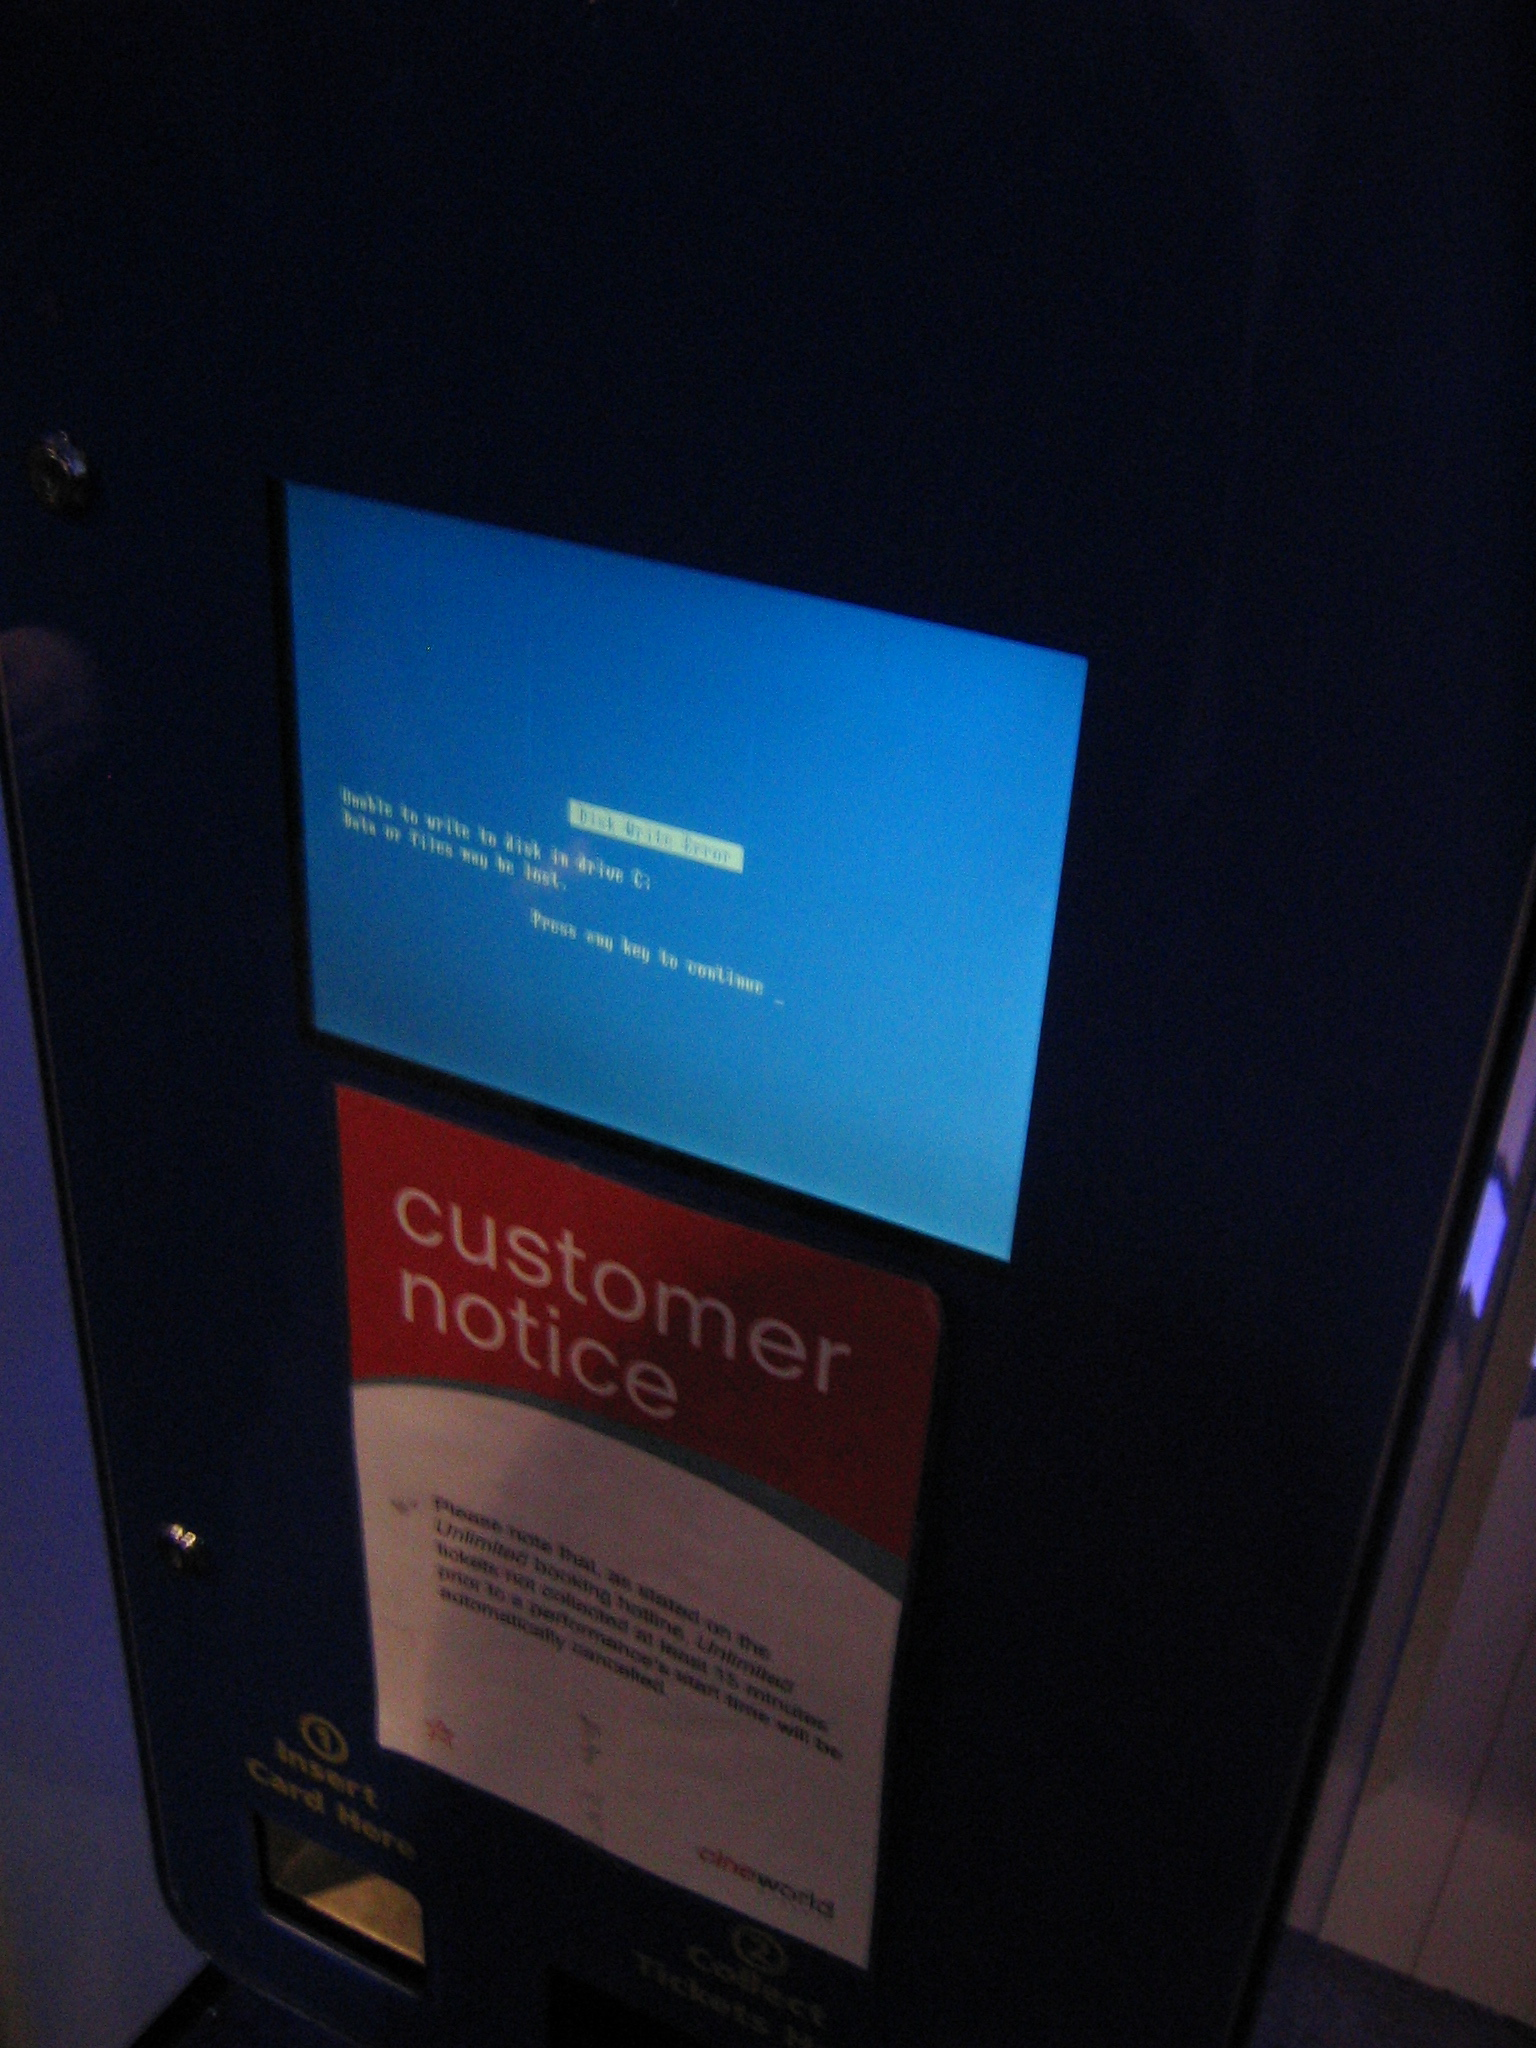 79935686 c485b1249a o Ticket machine in the Cineworld on Renfrew Street found on Flickr Funny Picture